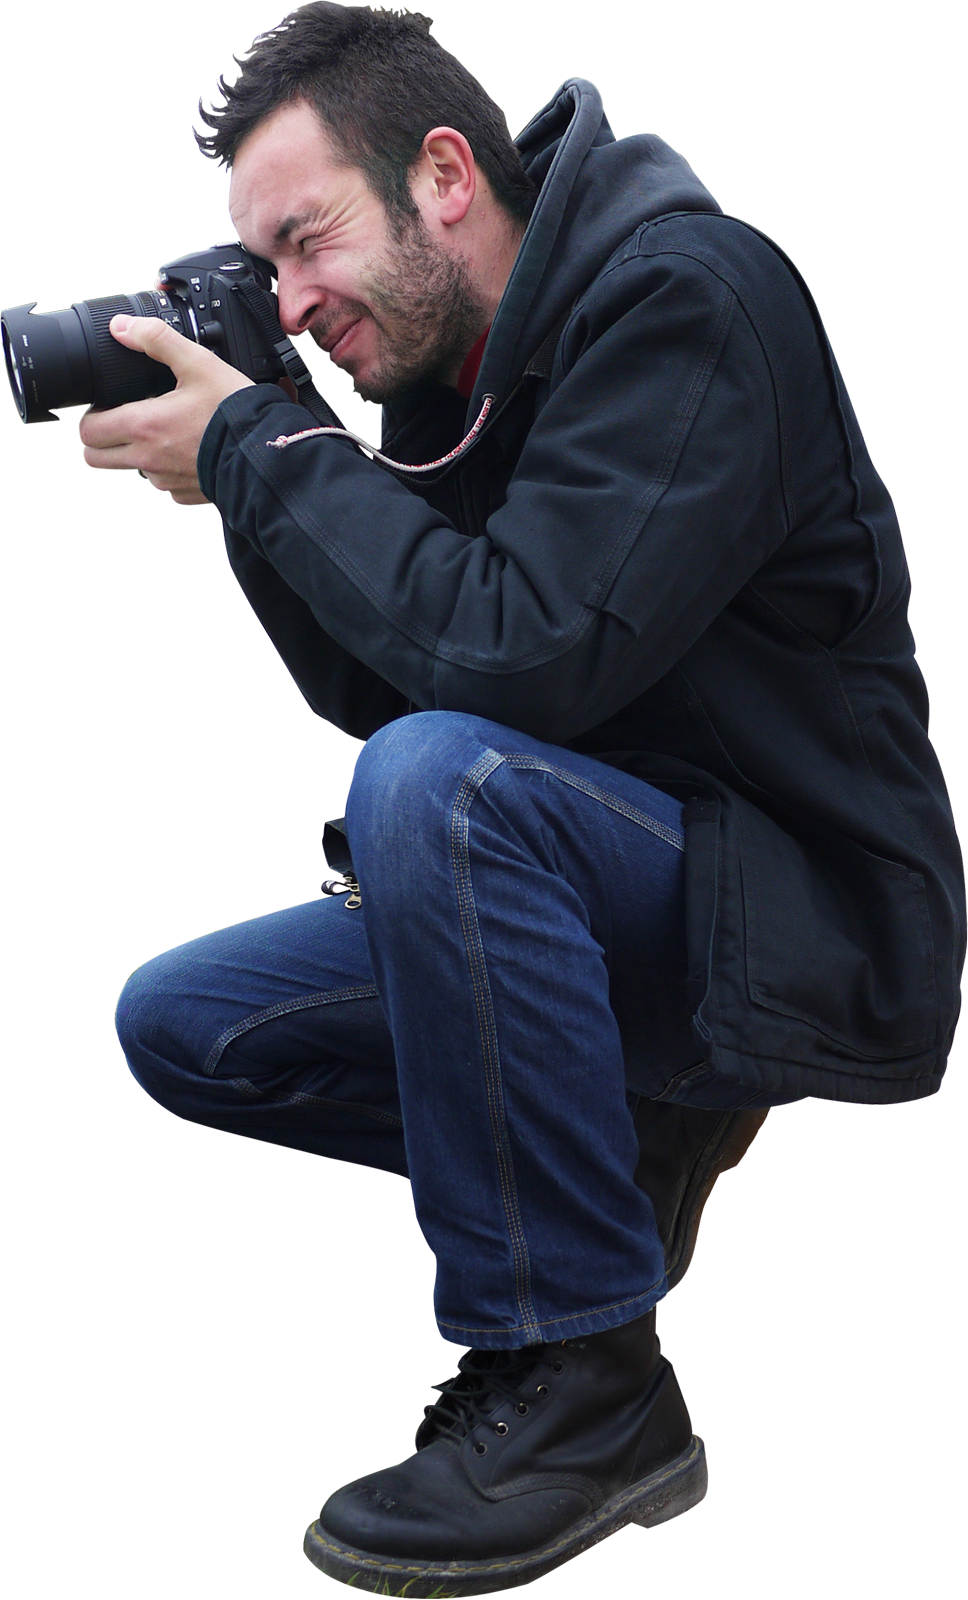 People png pictures free. Transparent photographs man graphic freeuse download